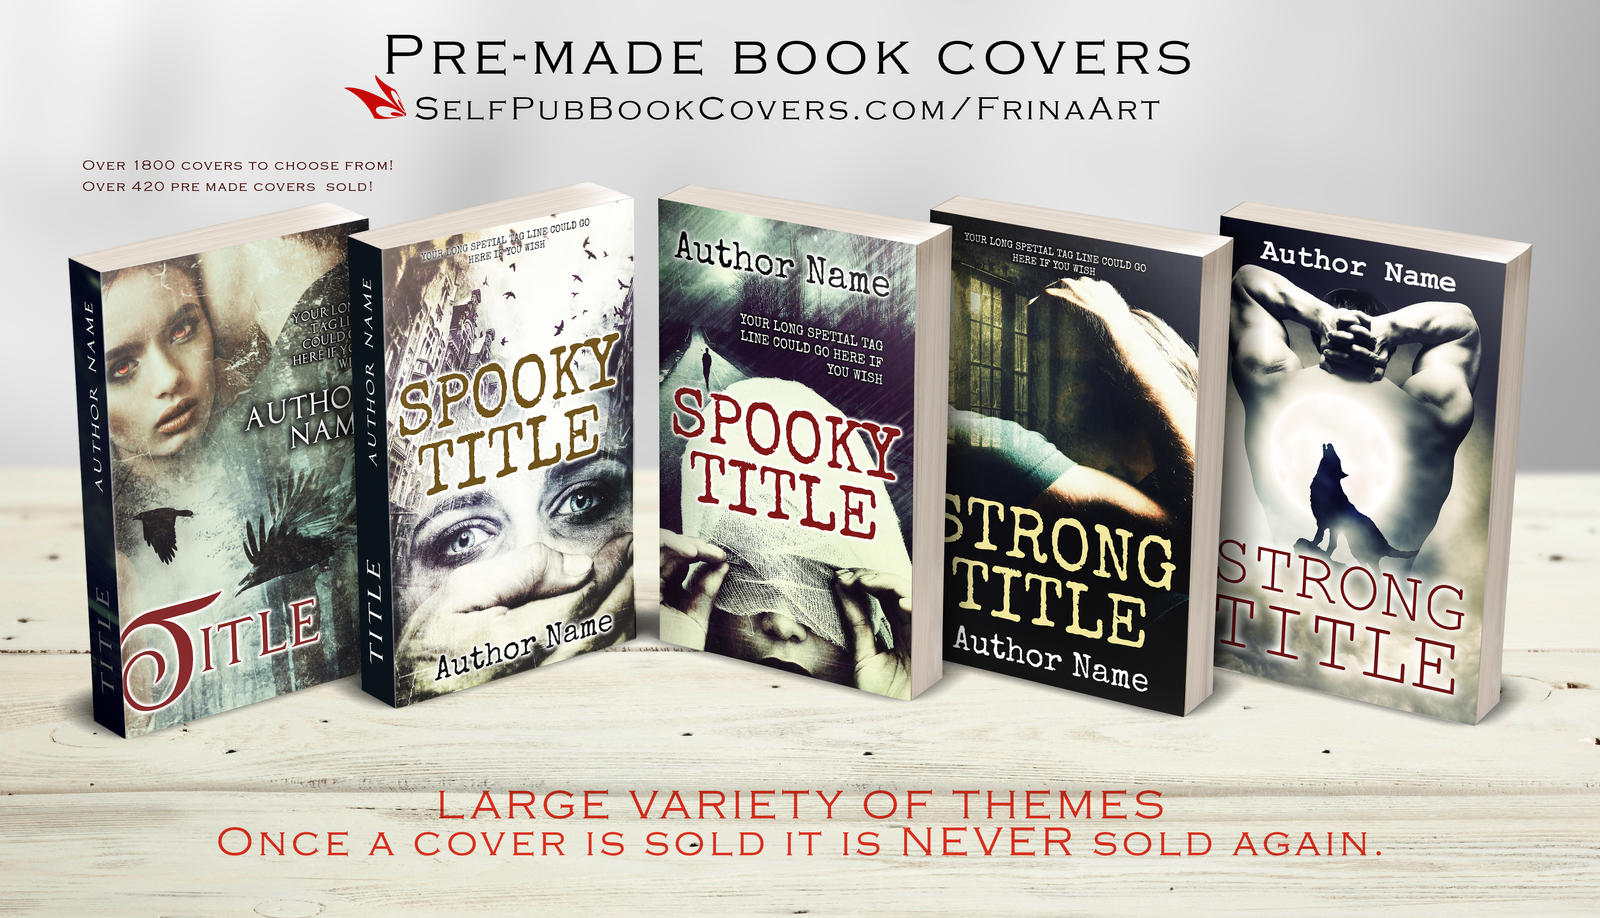 Premade Book Cover Art : Pre made book covers by frinaart thriller on